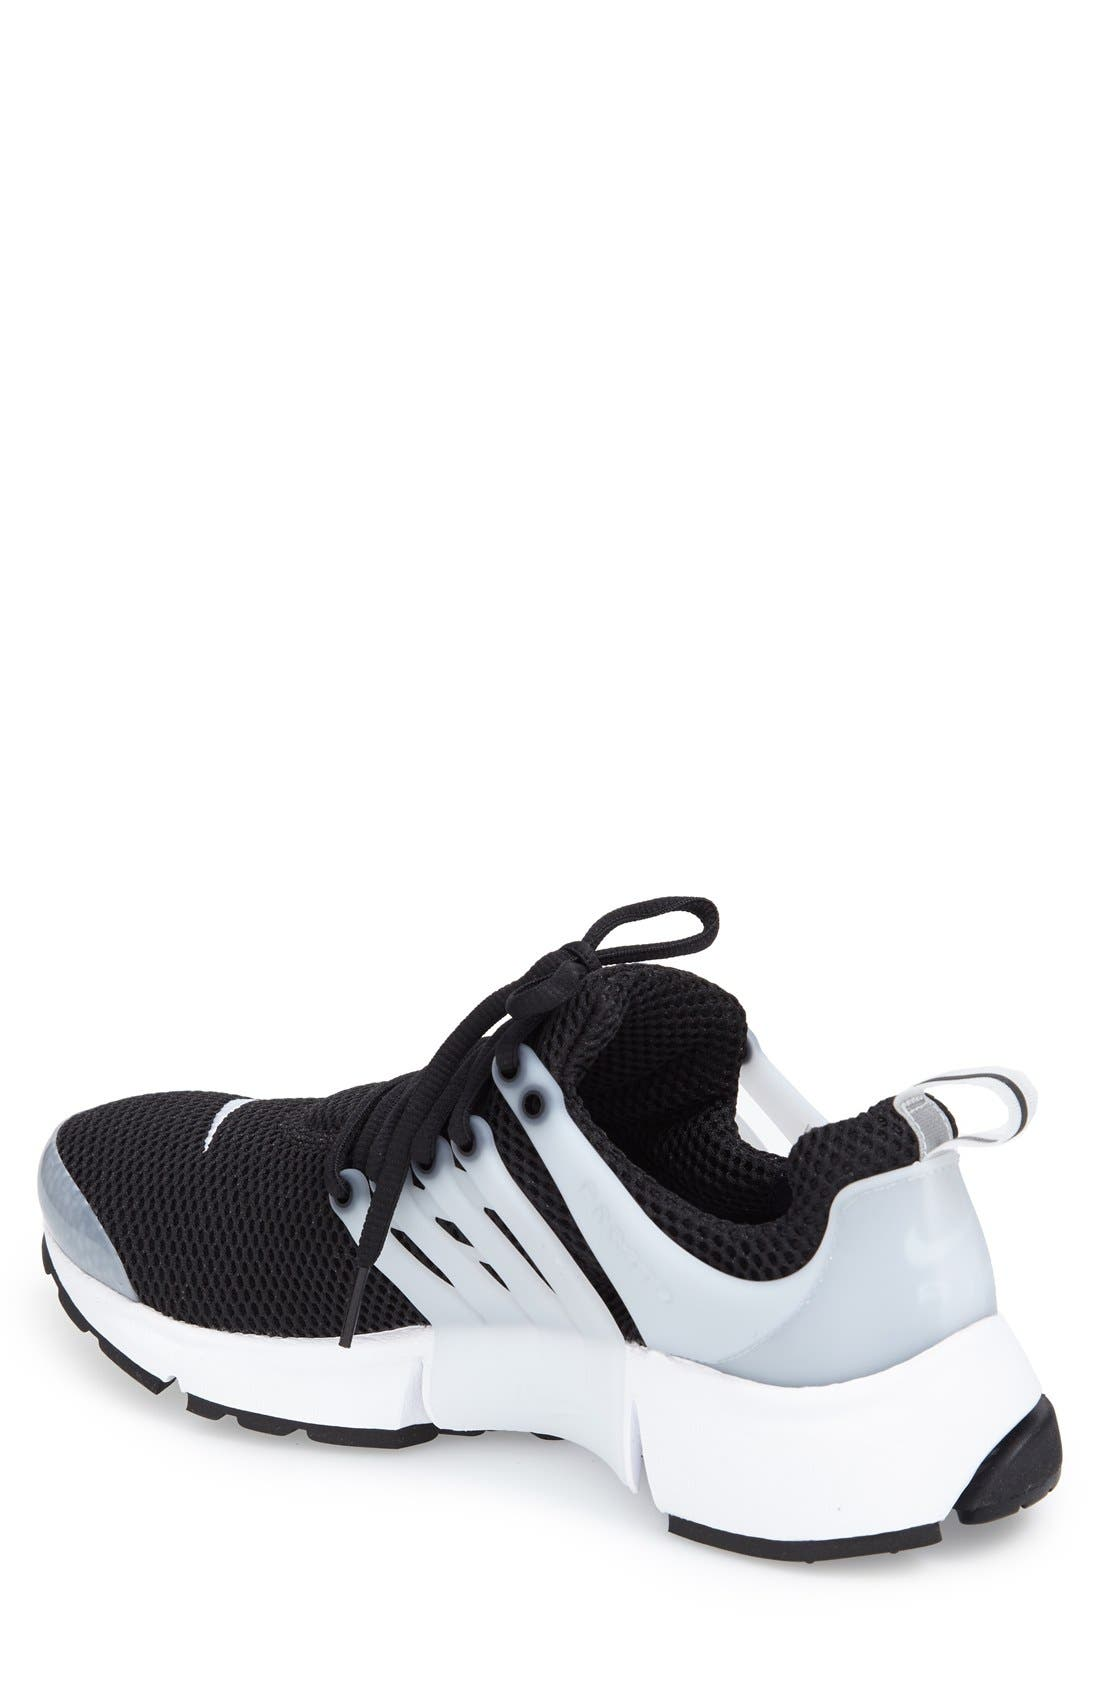 Alternate Image 2  - Nike 'Air Presto' Sneaker (Men)